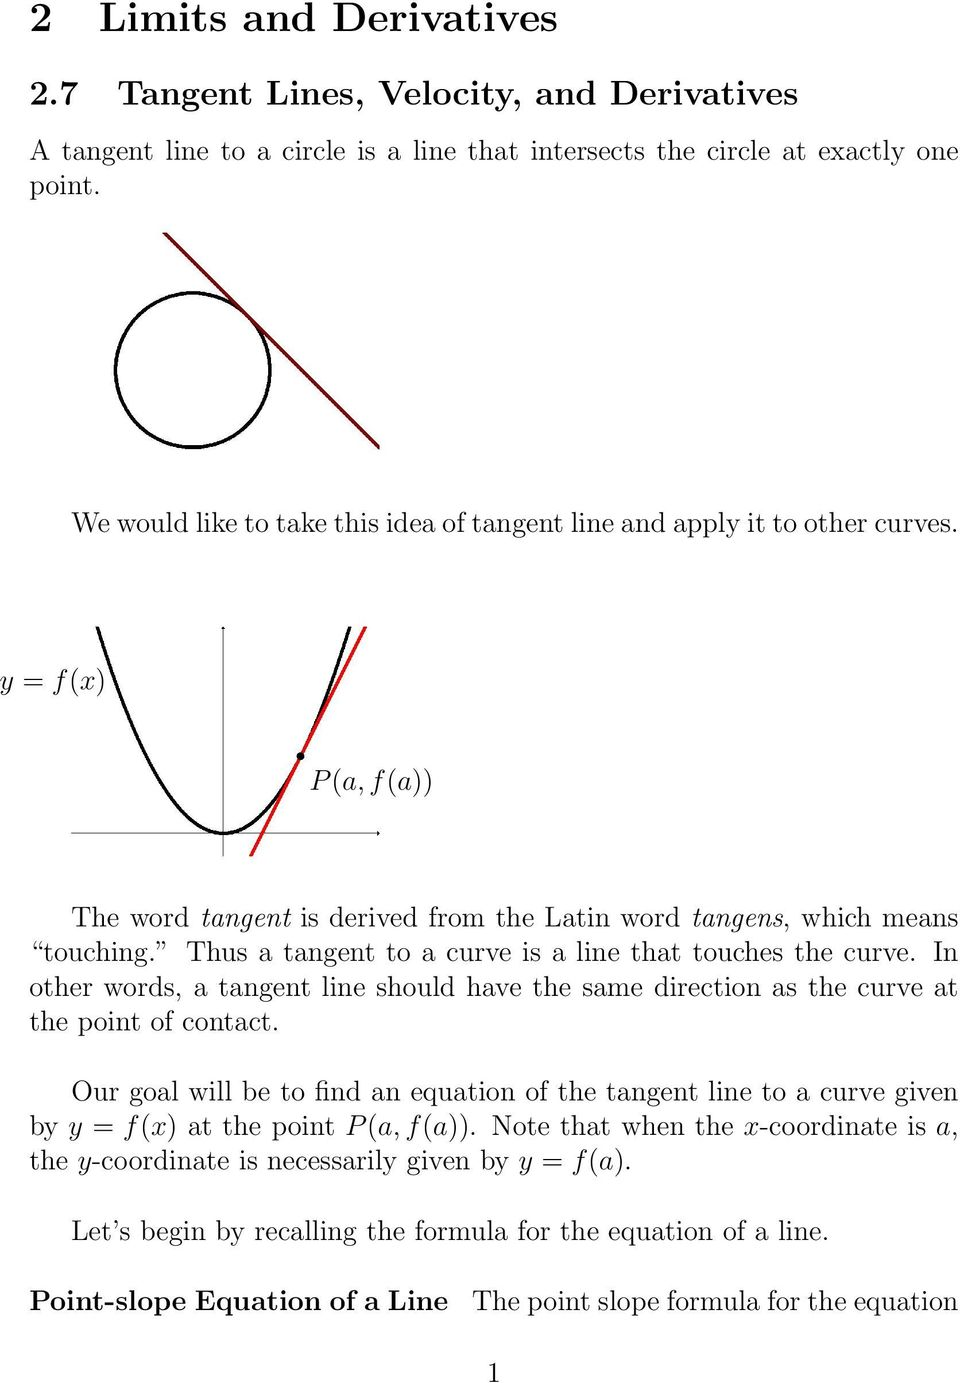 Tus a tangent to a curve is a line tat touces te curve. In oter words, a tangent line sould ave te same direction as te curve at te point of contact.